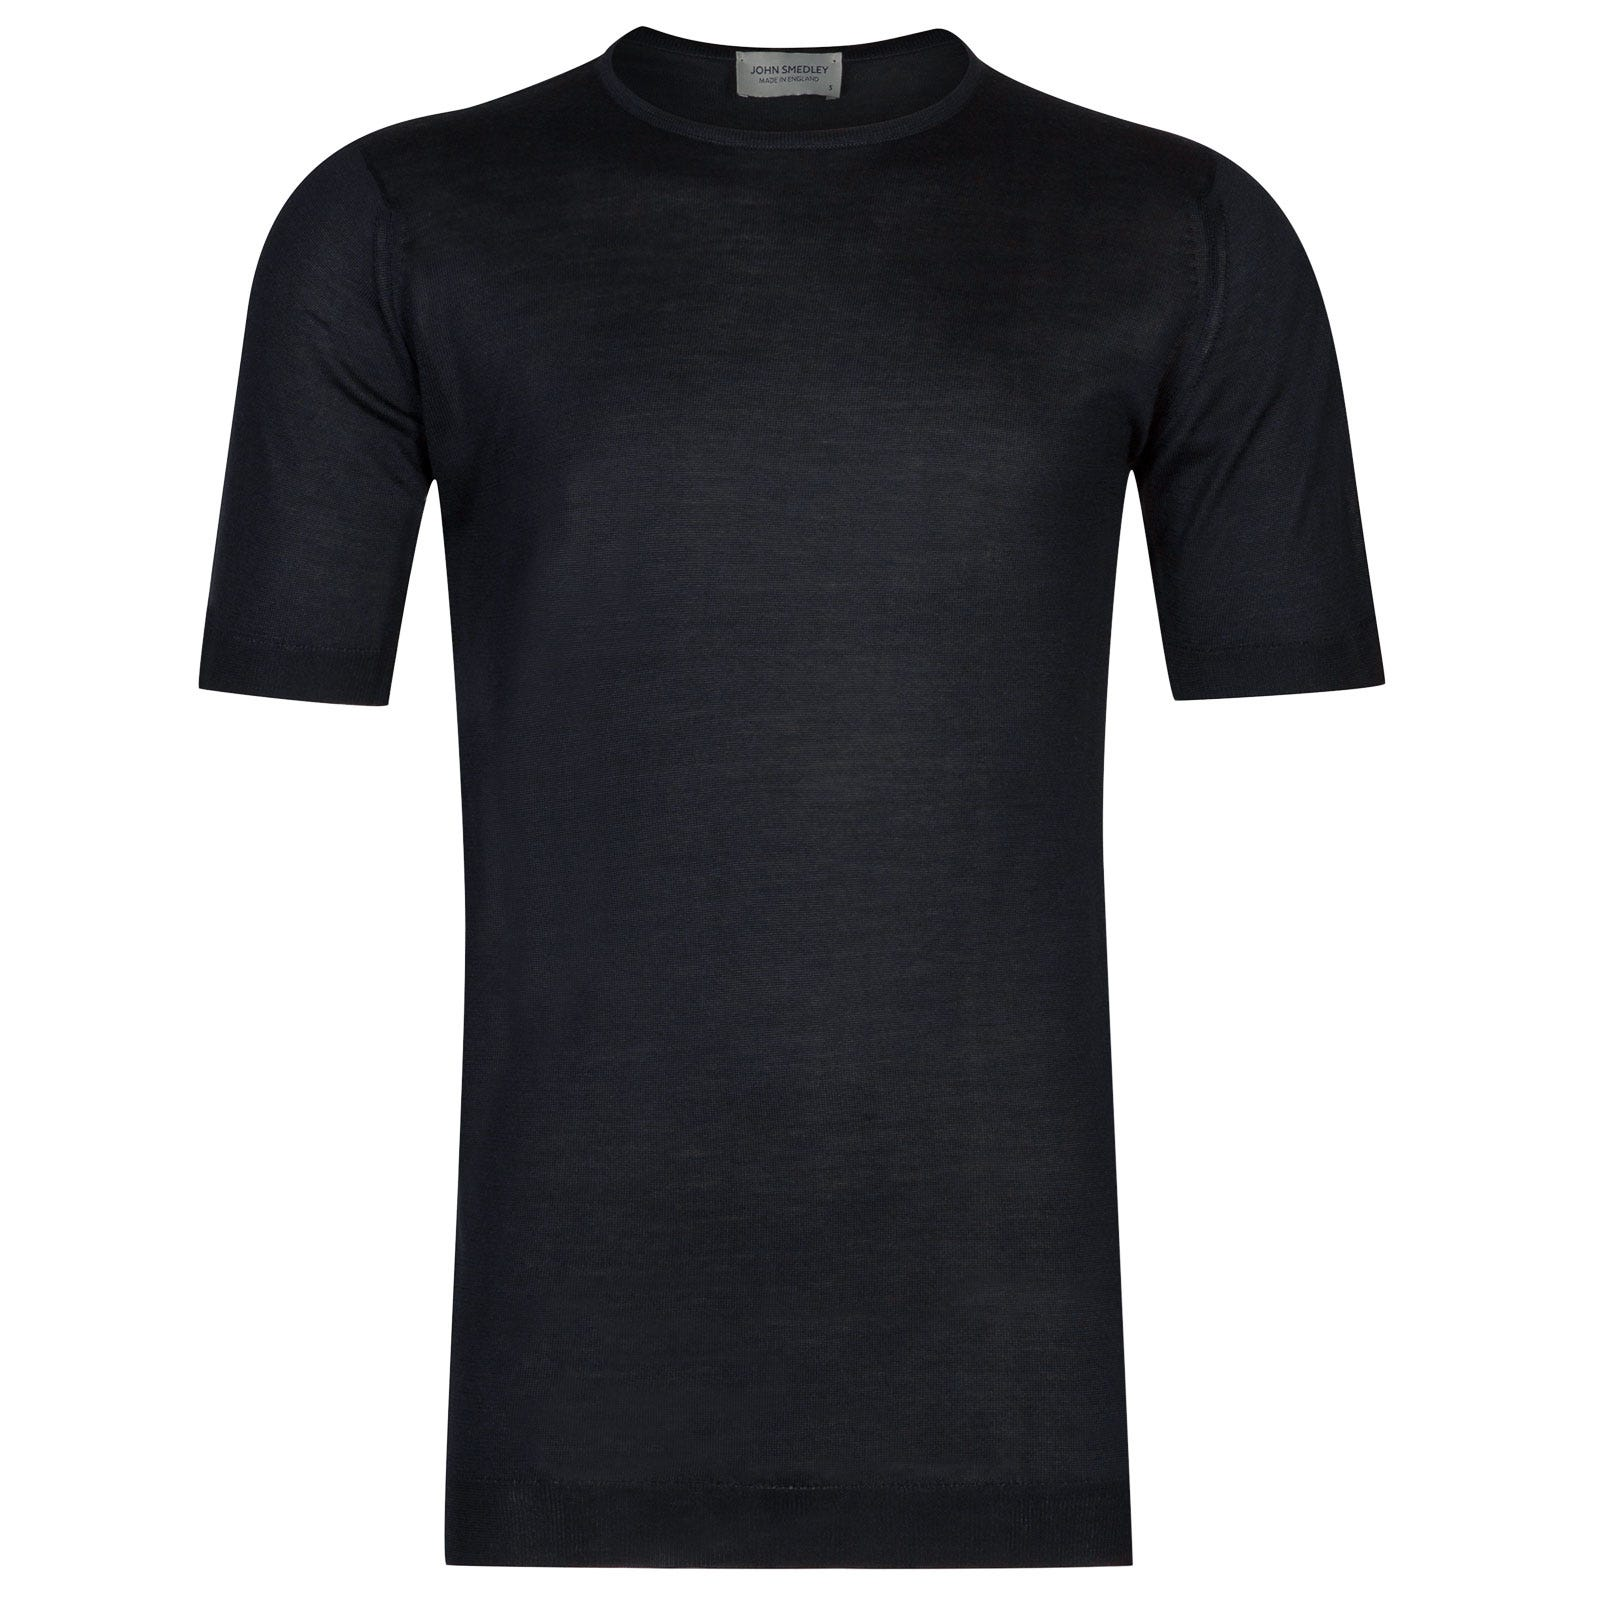 John Smedley stowe Pure Silk T-Shirt in Midnight-XL